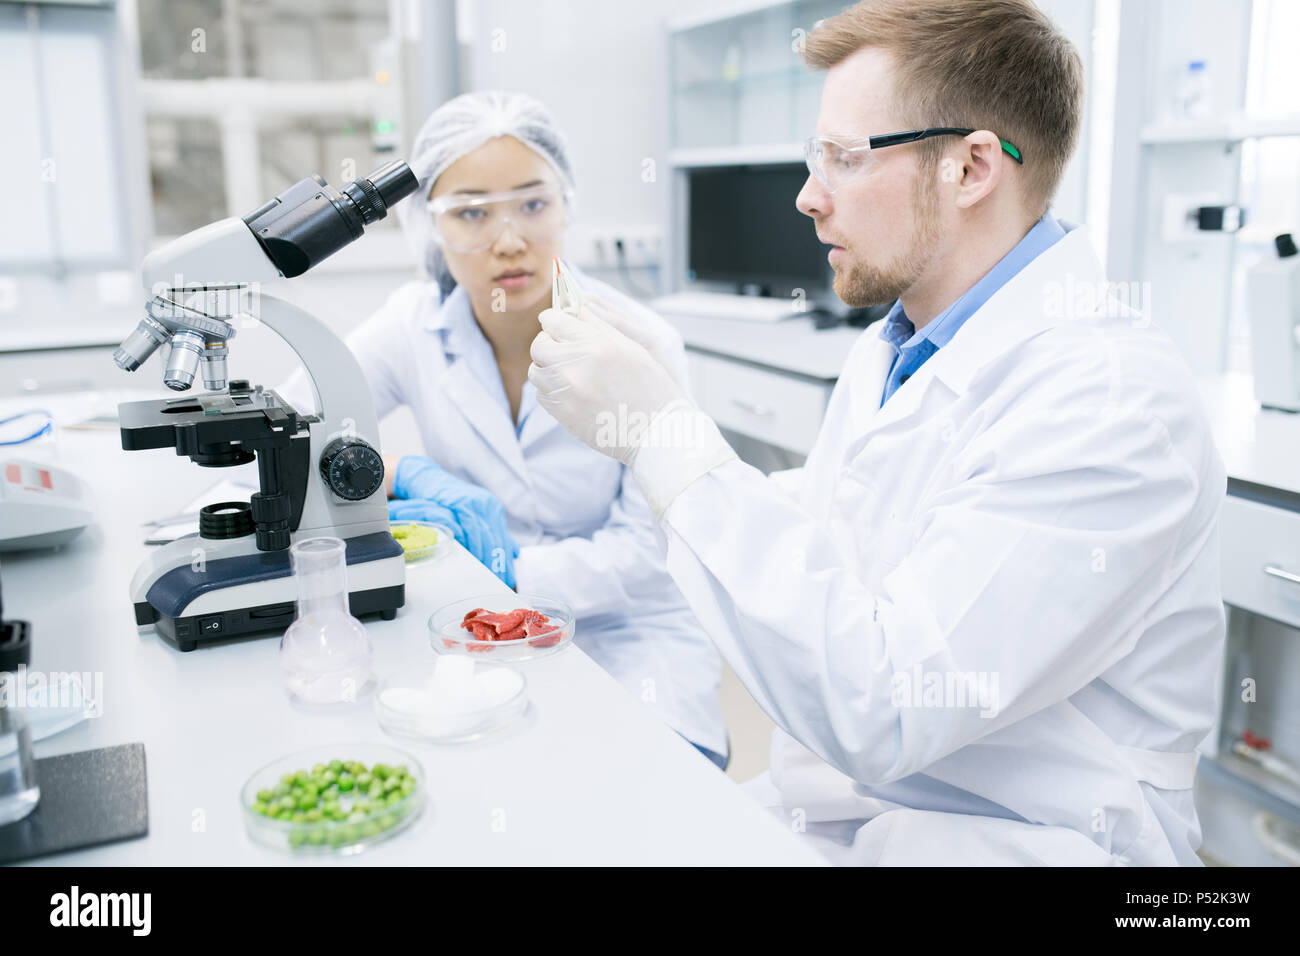 Woman scientist looking at colleague studying meat - Stock Image